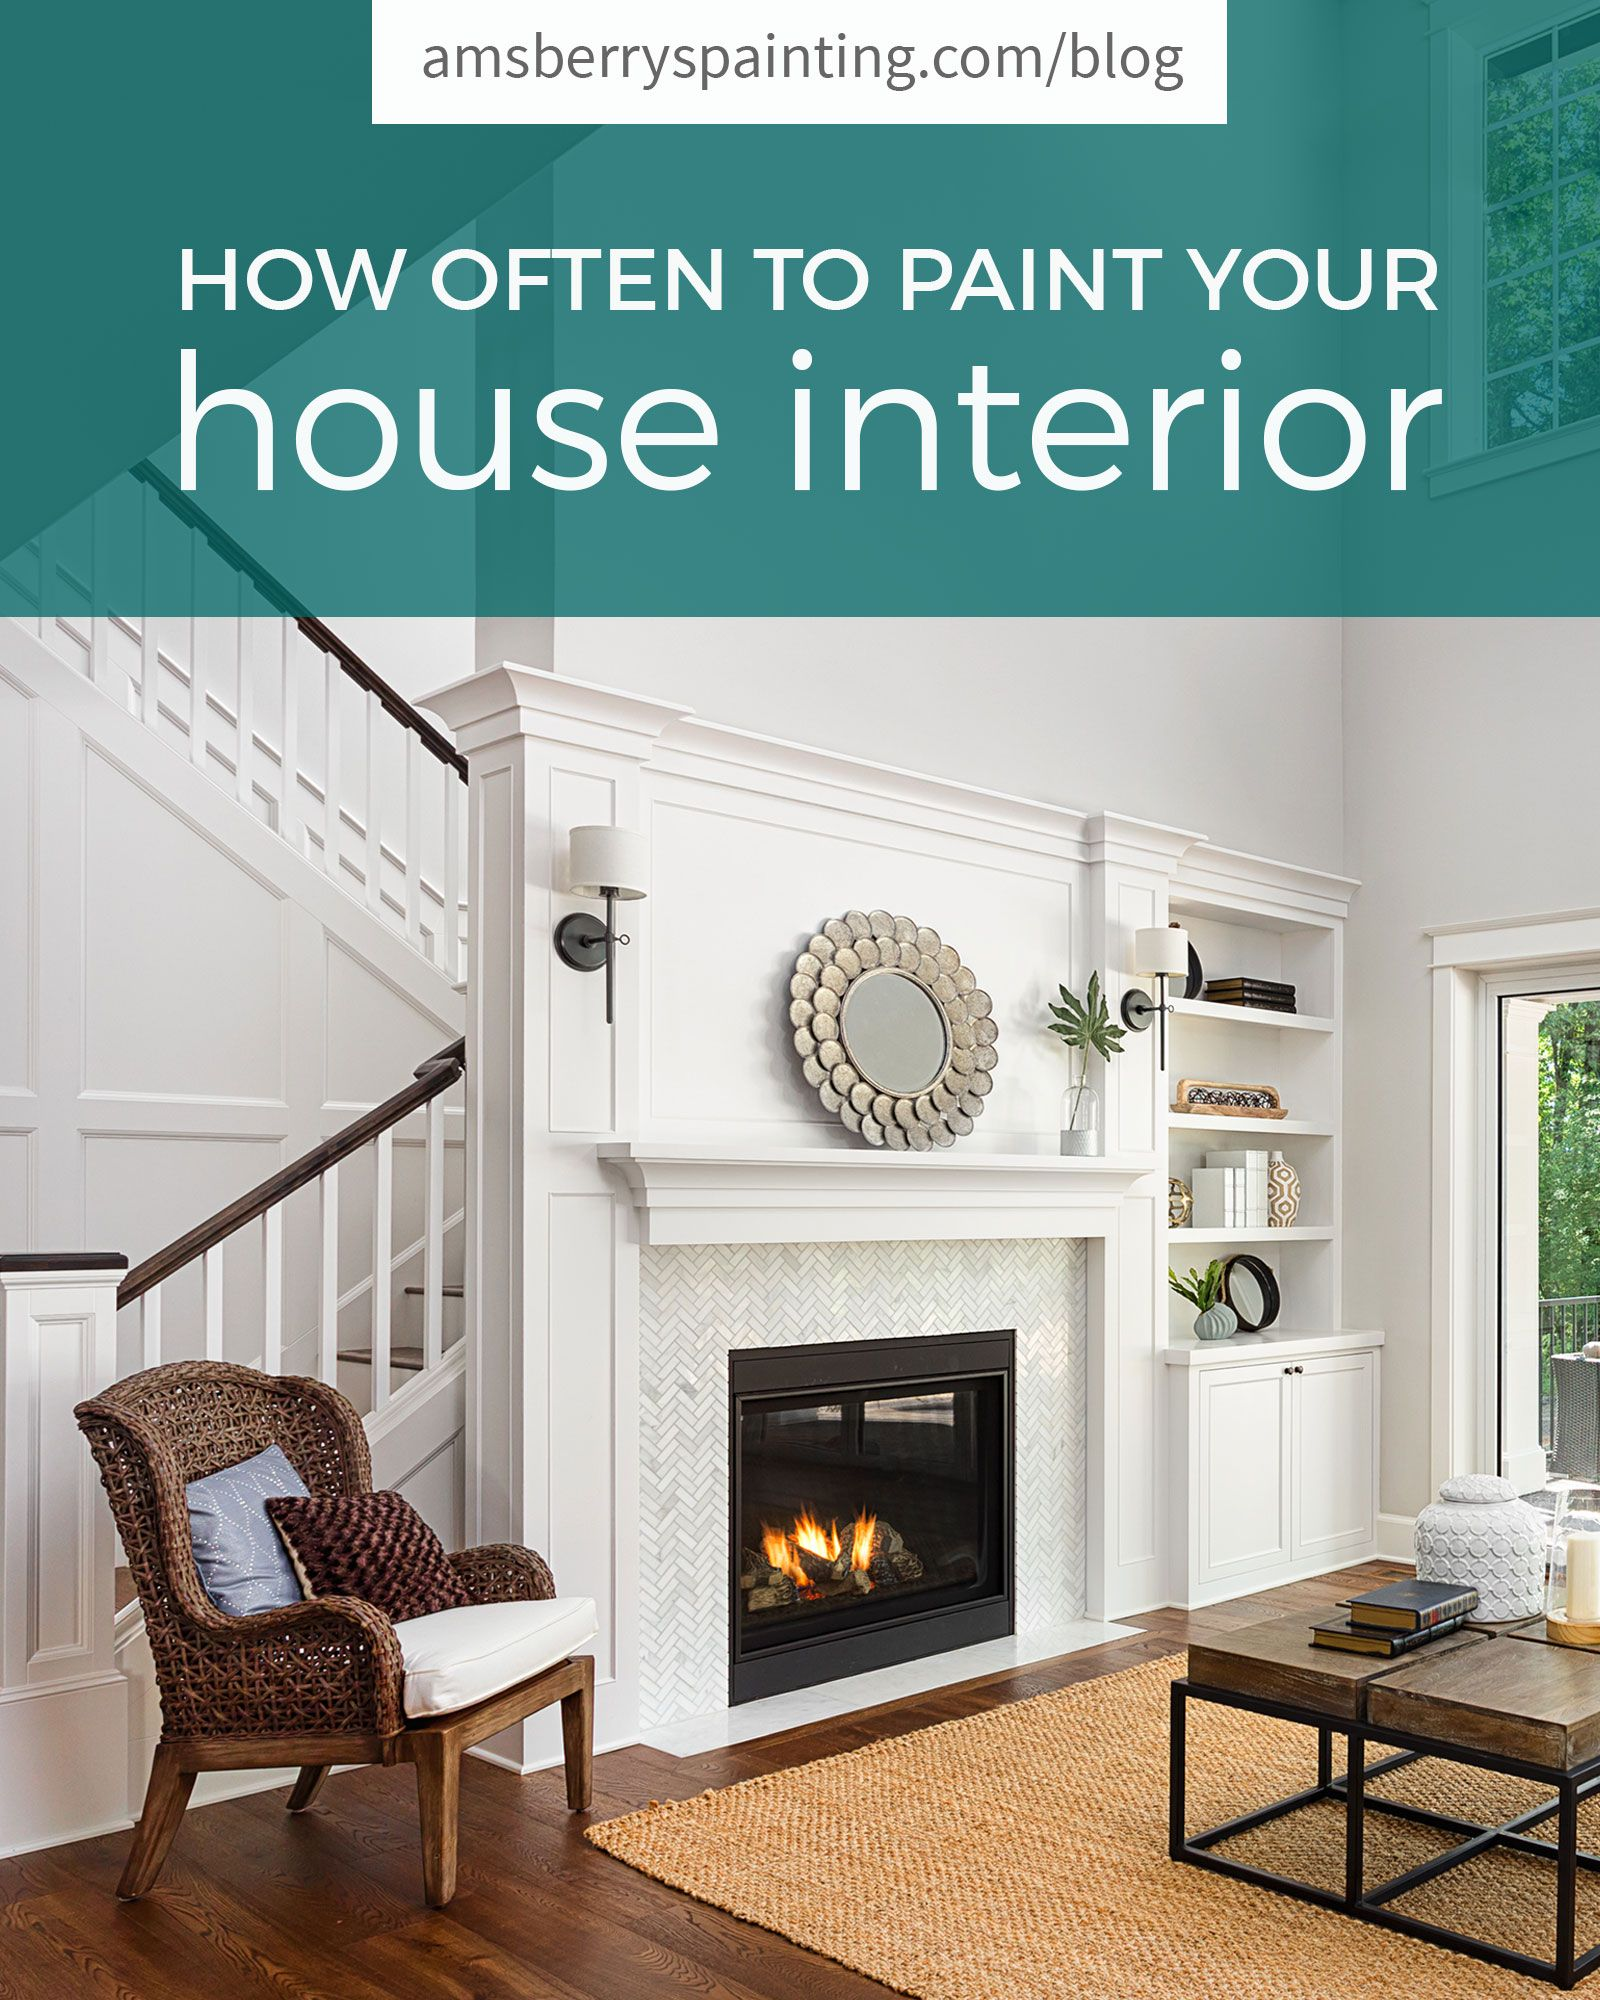 How Often To Paint Your House Interior With Images